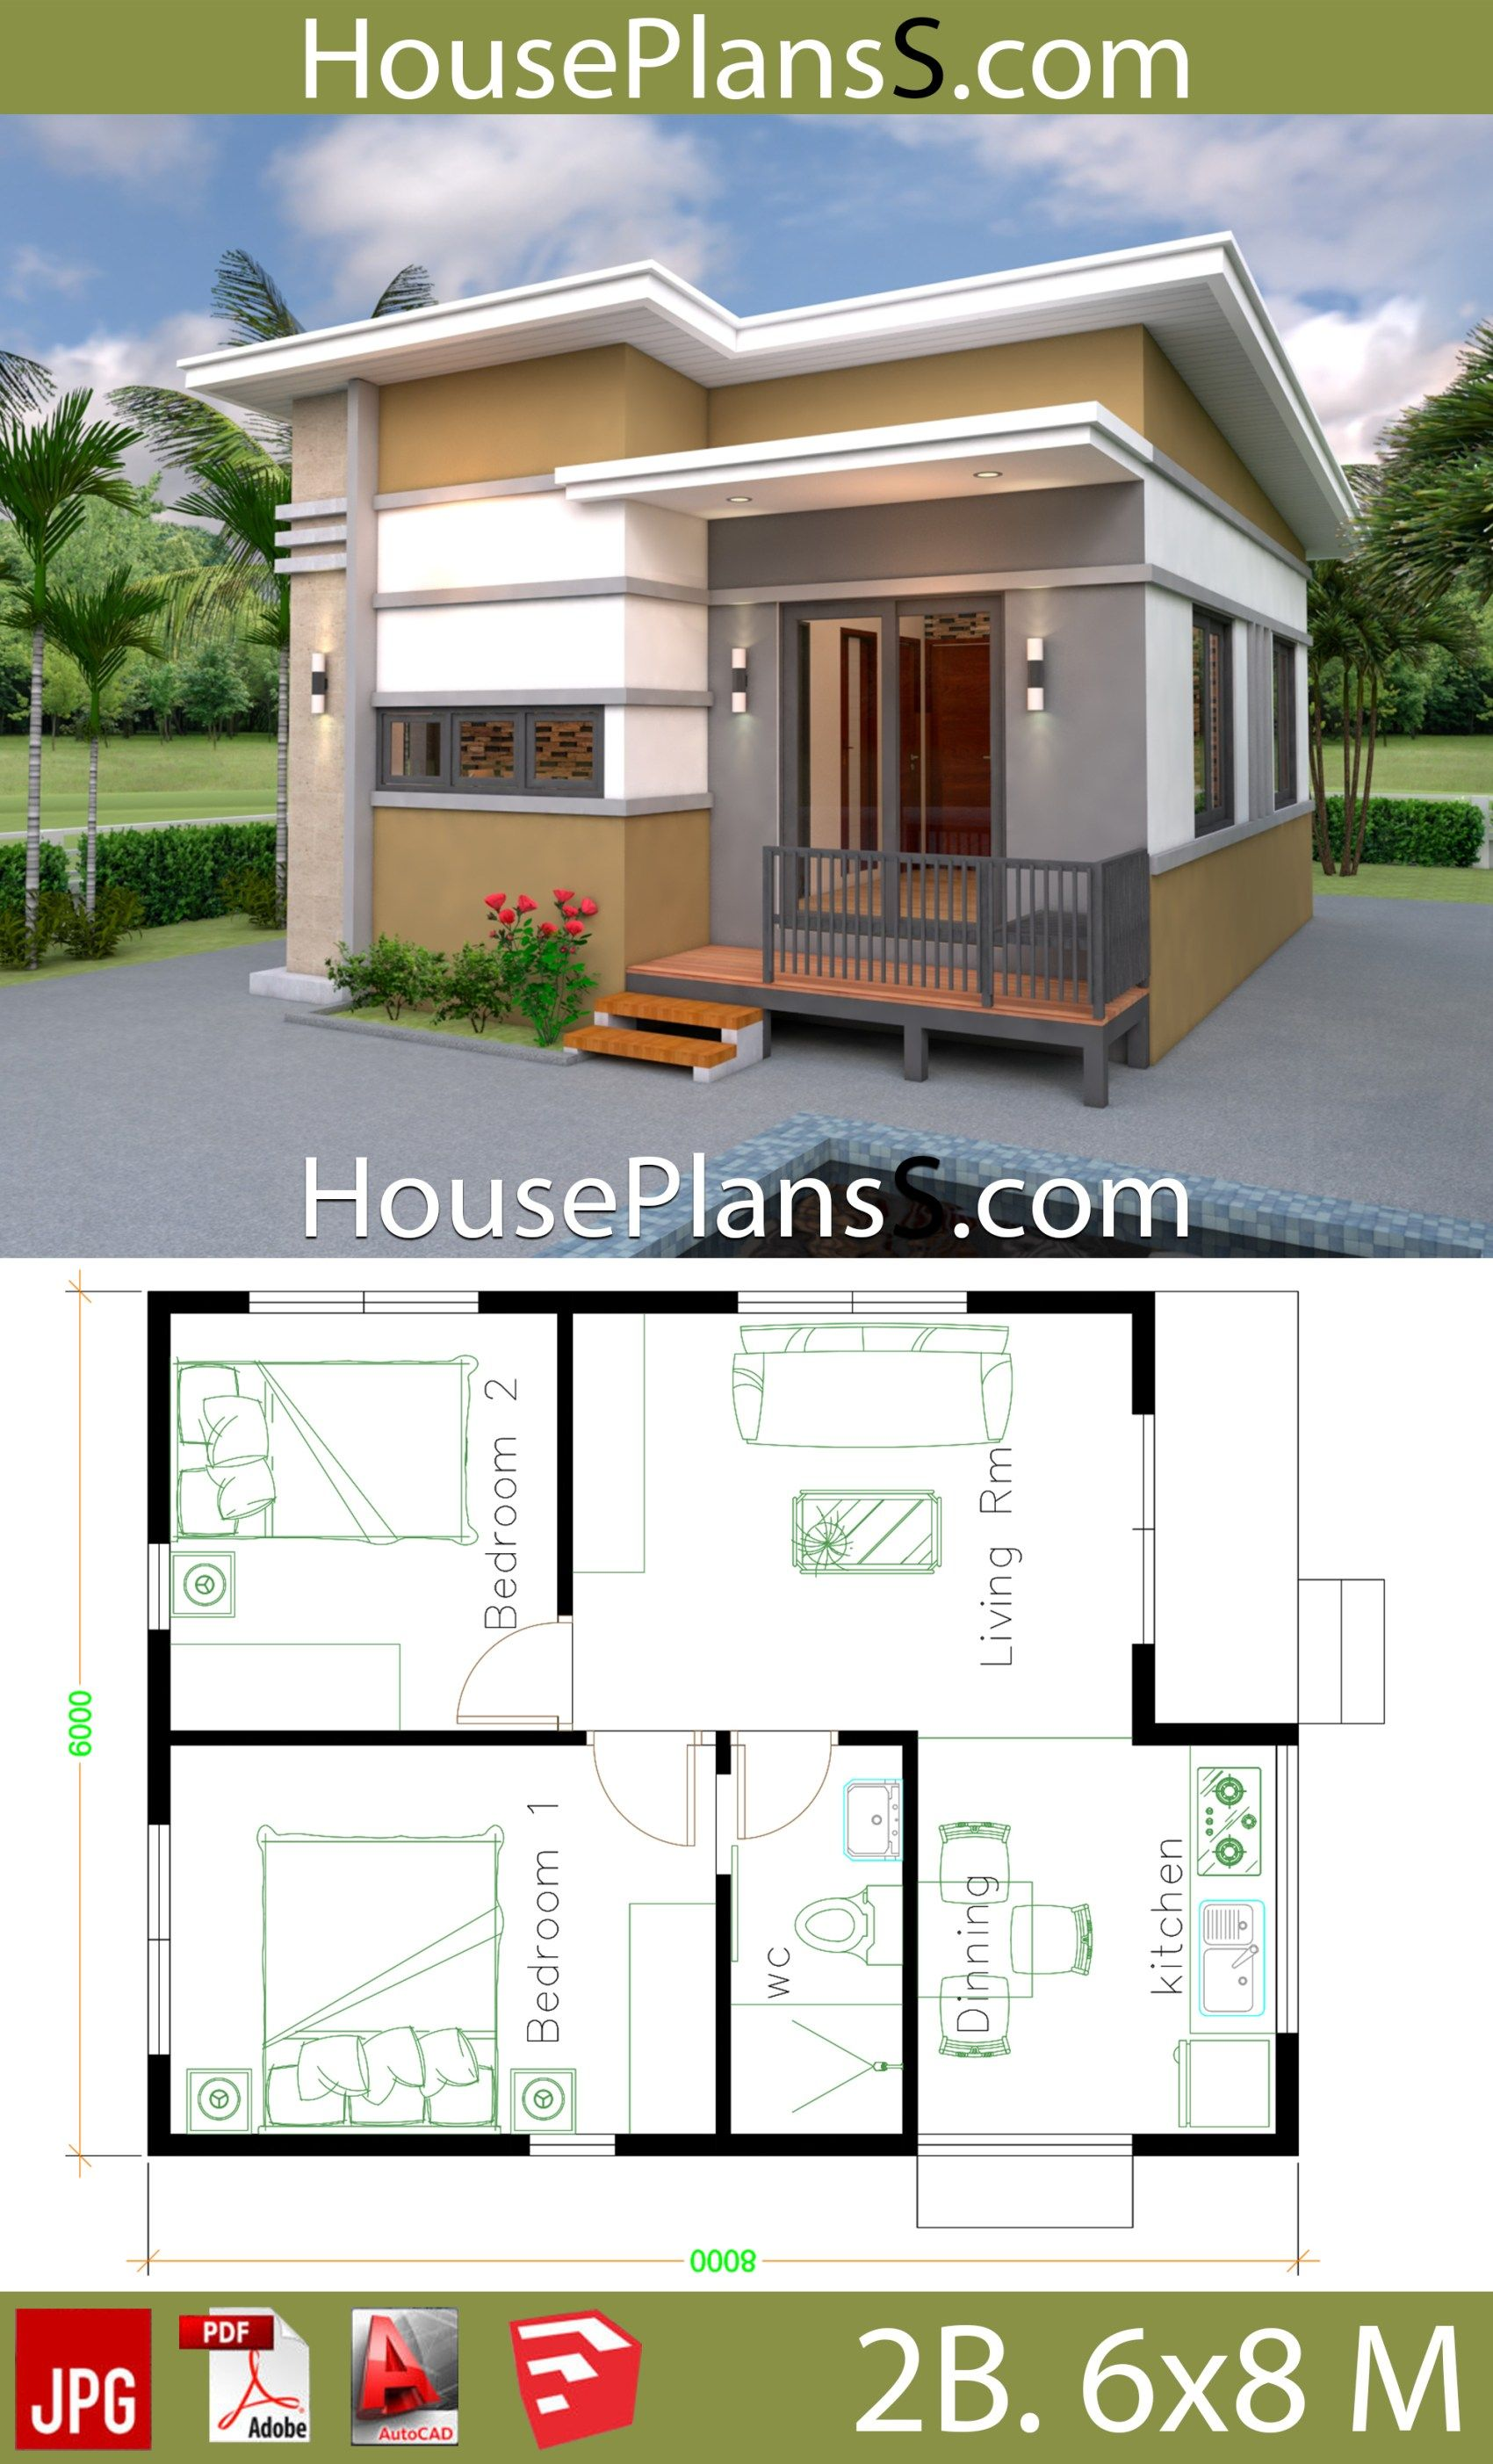 Small House Design Plans 6x8 With 2 Bedrooms House Plans 3d Small House Design Plans Home Design Plans House Plans